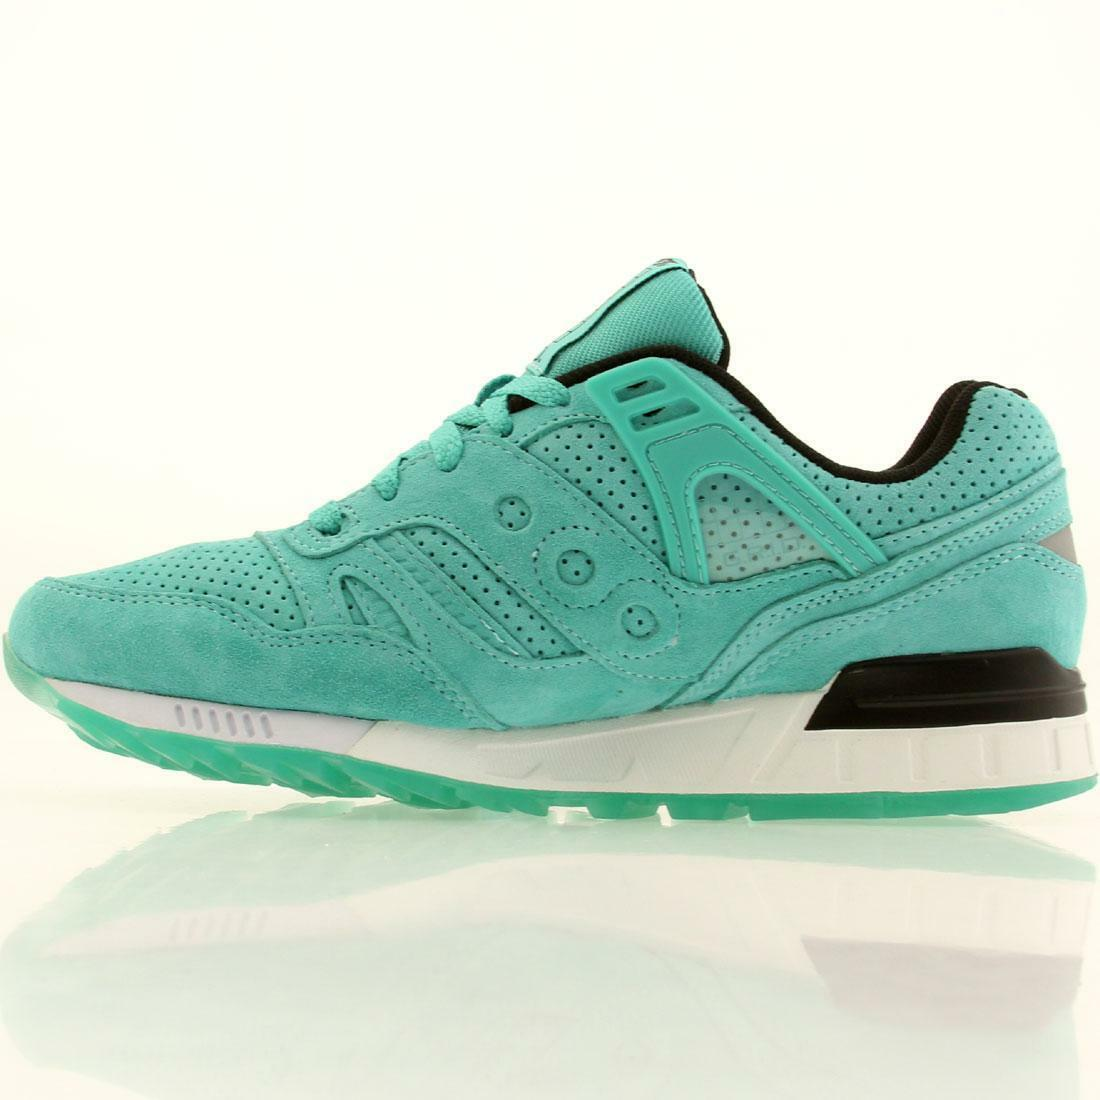 Vert Saucony Homme No Grid Chill Sd Light Pack rT70qwTgx